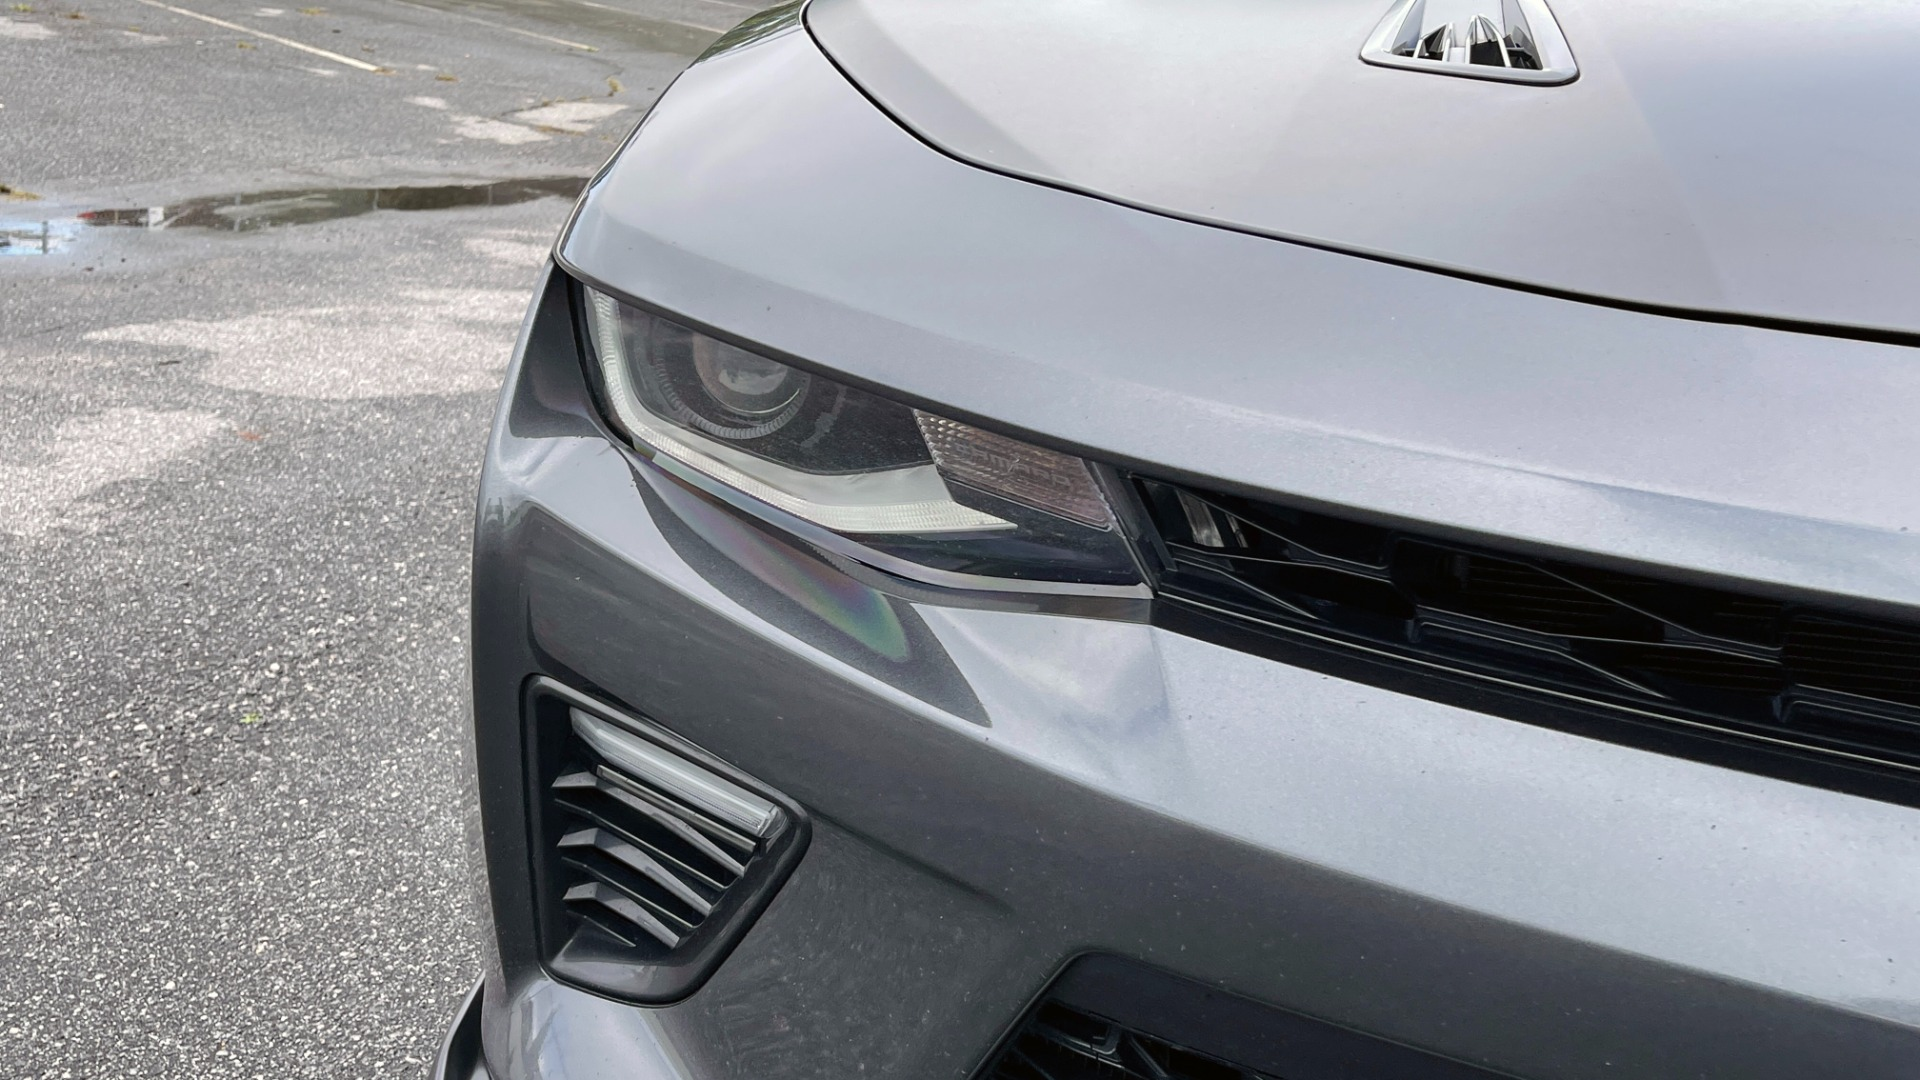 Used 2018 Chevrolet CAMARO 2SS / 6.2L V8 / MANUAL / 1LE TRACK PKG / NAV / BOSE / REARVIEW for sale $39,795 at Formula Imports in Charlotte NC 28227 13